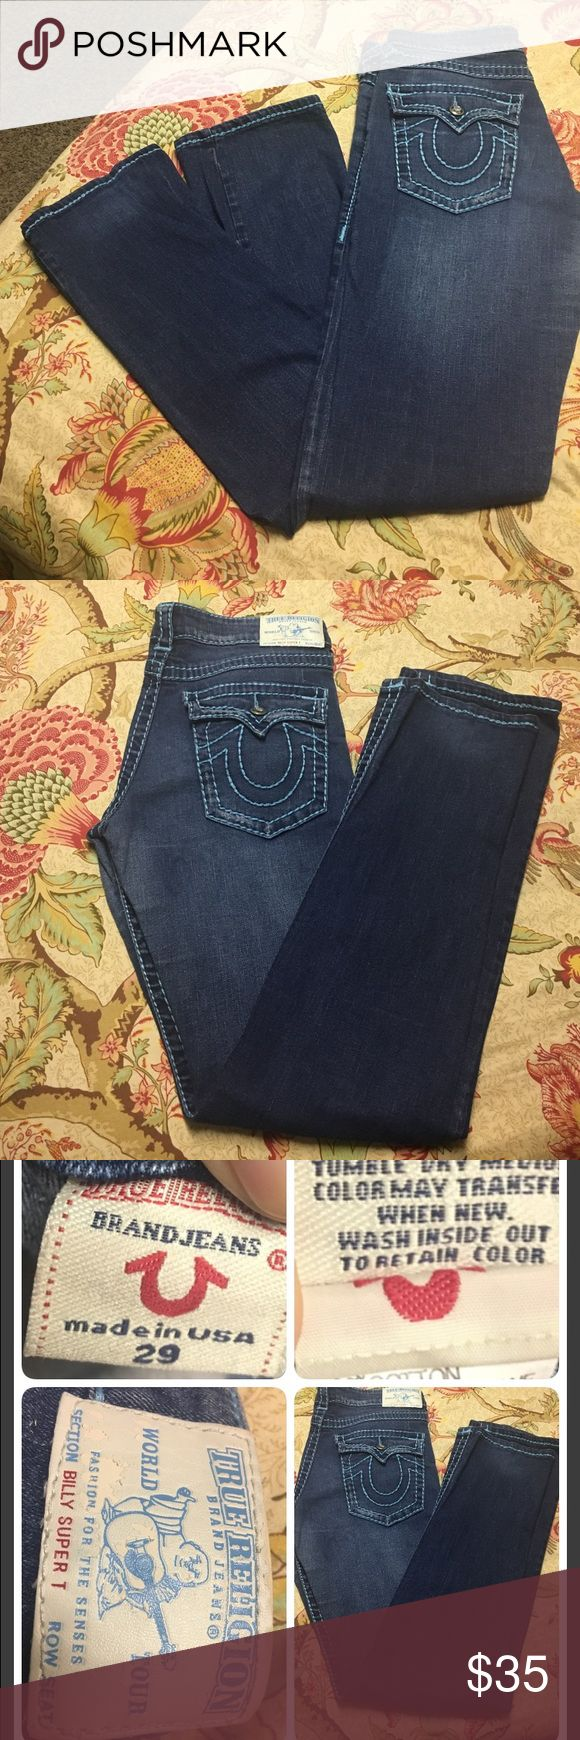 True Religion Jean True religions with turquoise/blue stitching older style jeans with Swarovski buttons. So very cute. Some of the stitching is loose as shown in certain areas. Other wise in great shape. Smoke free home True Religion Jeans Boot Cut